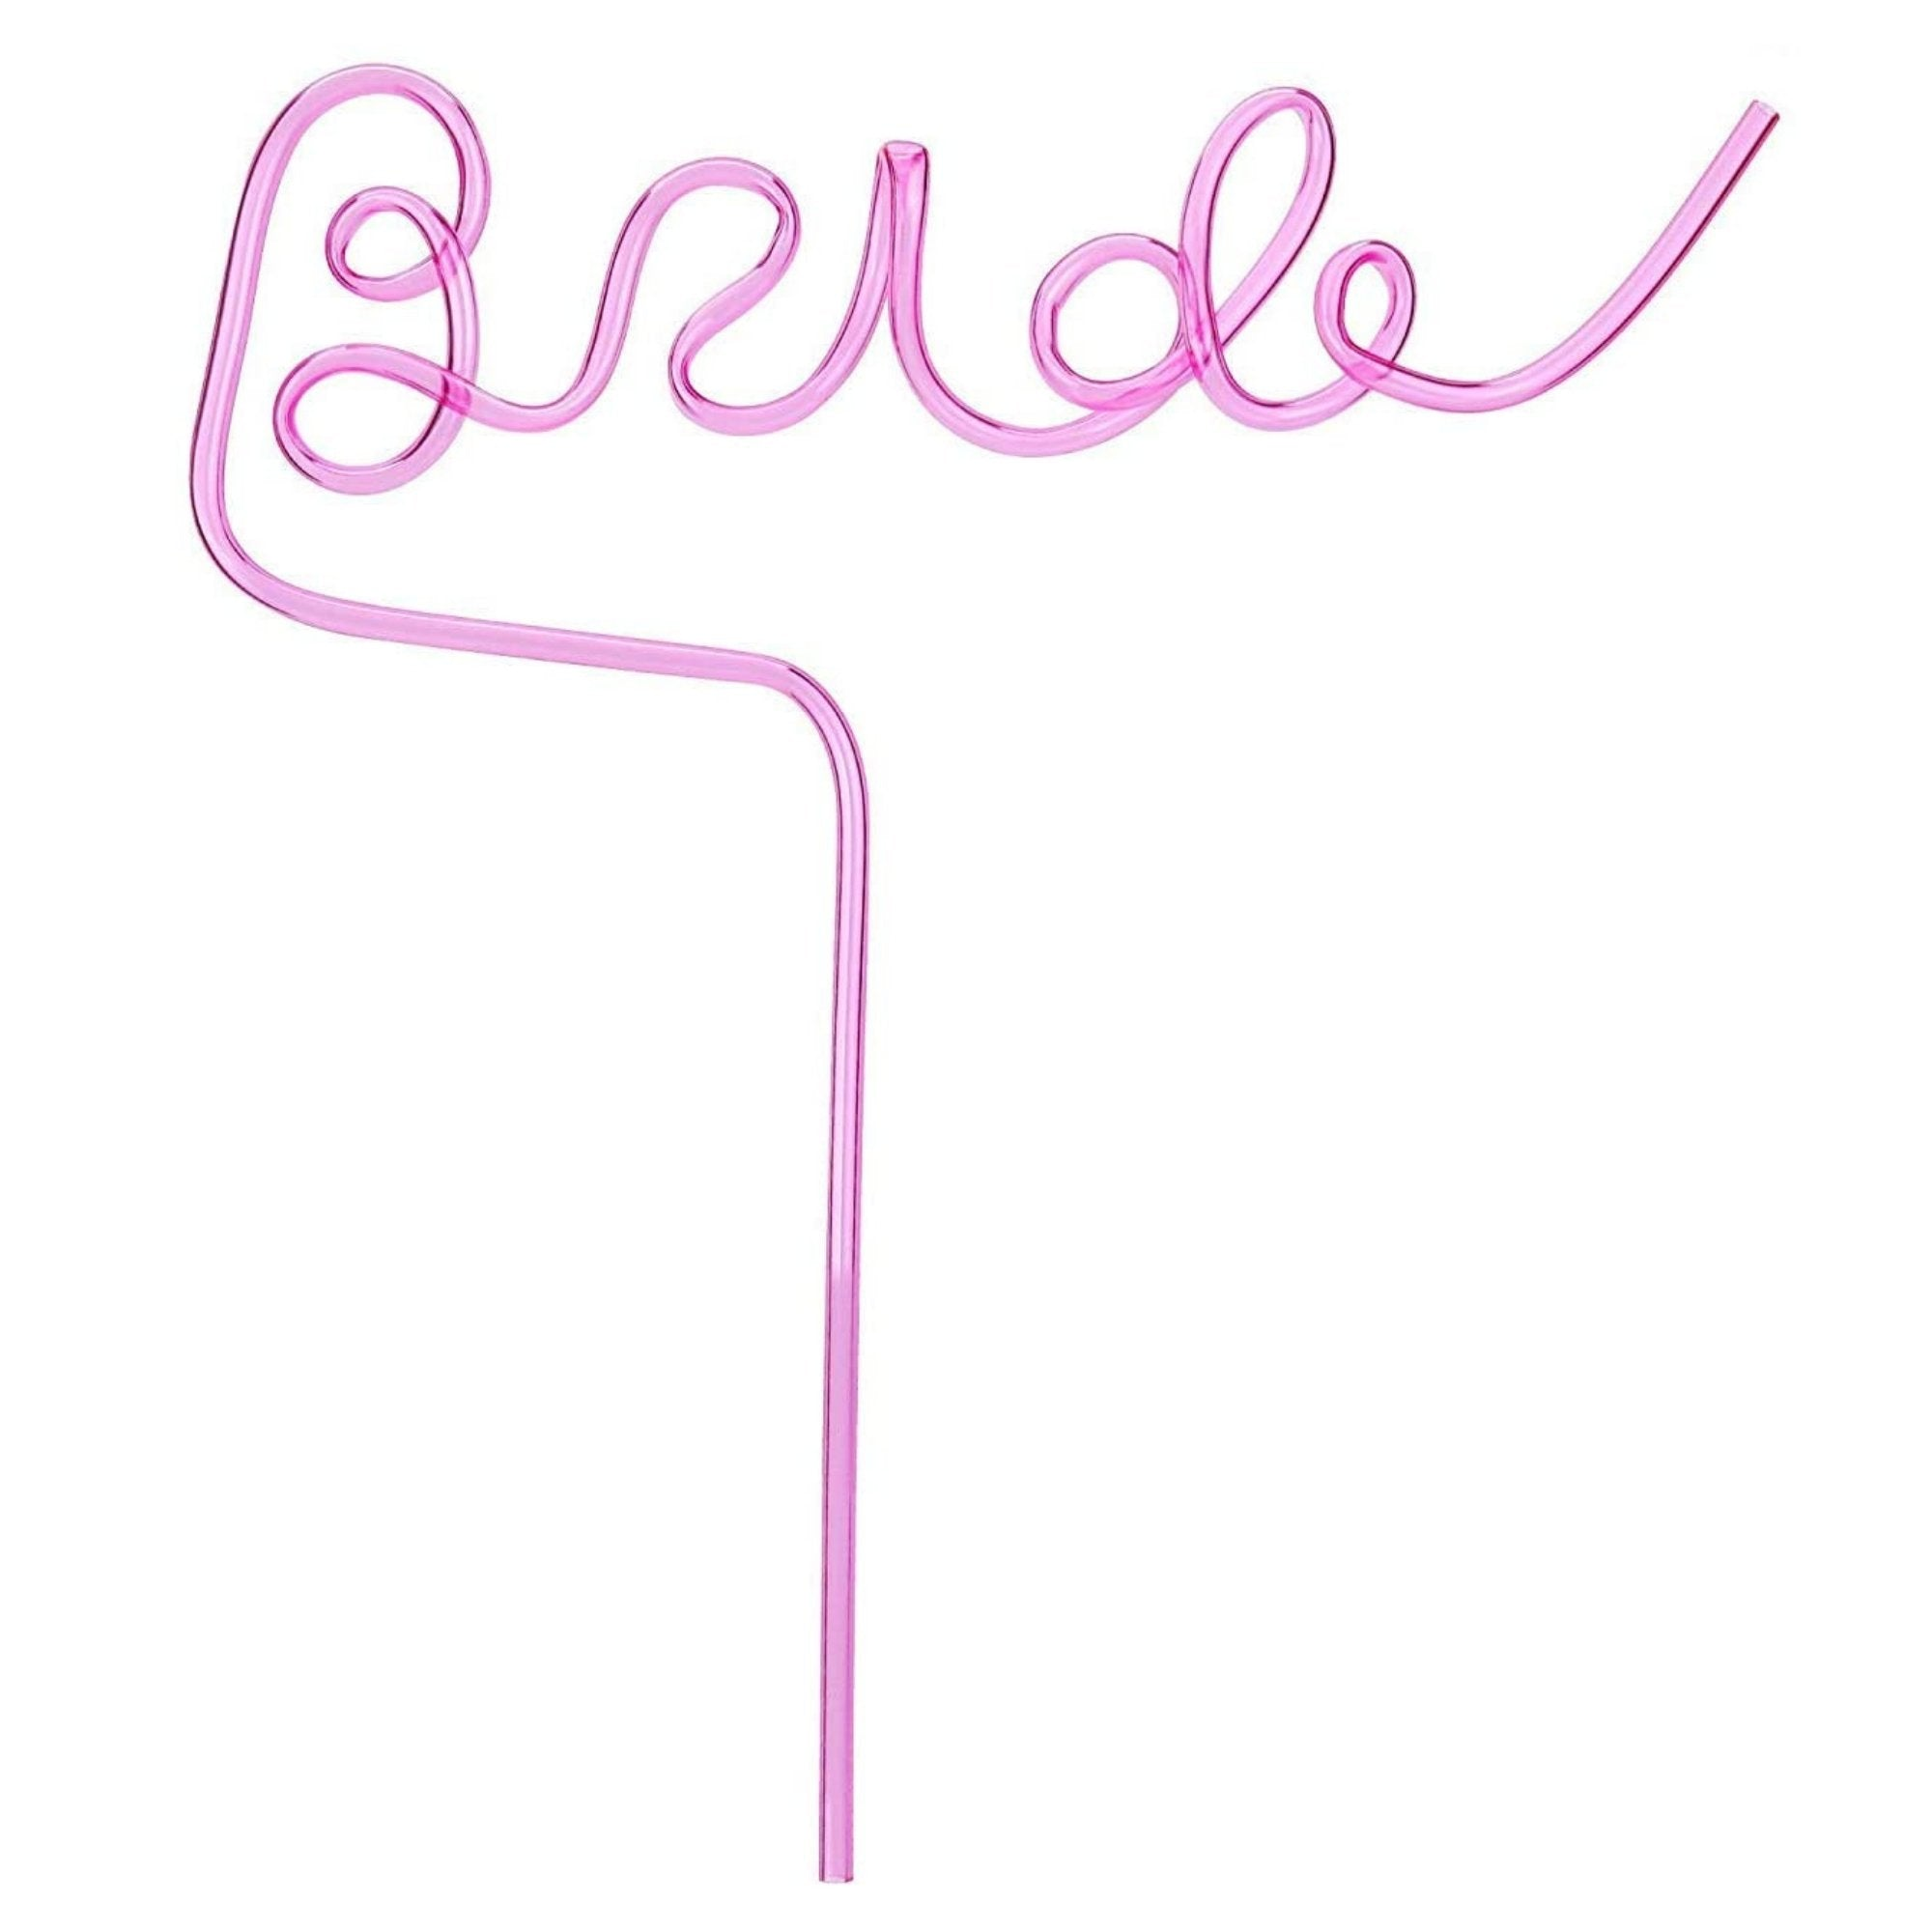 Bride Straw - Sprinkled With Pink #bachelorette #custom #gifts